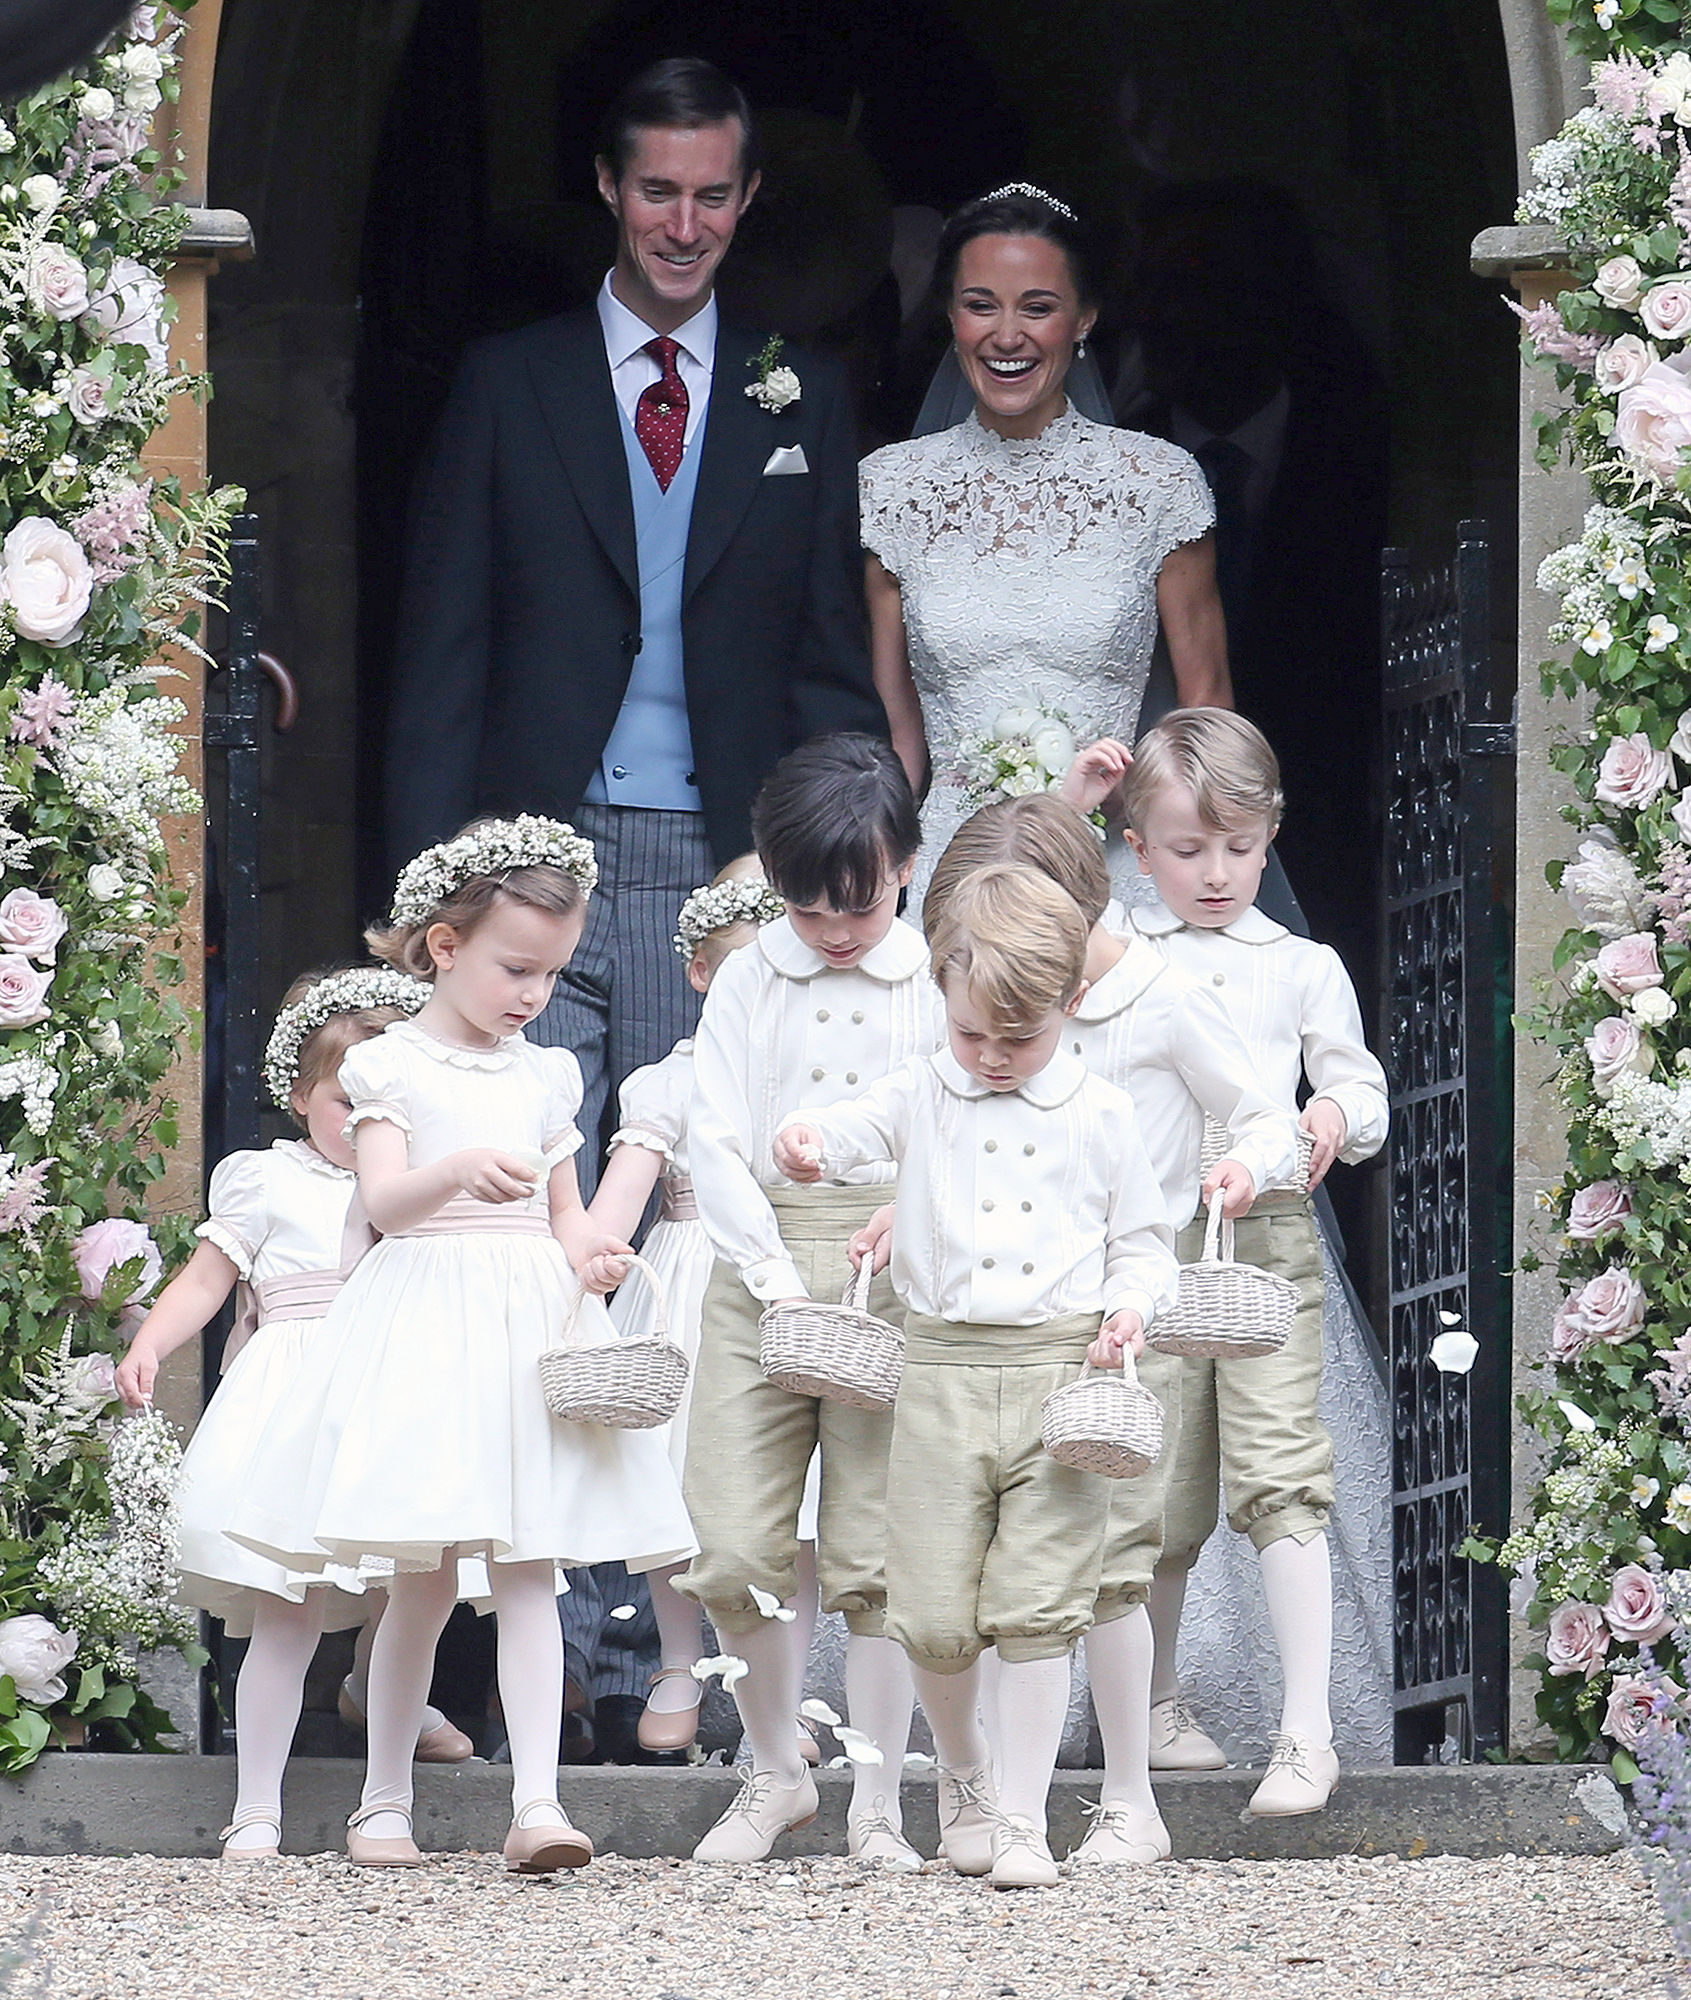 The Wedding of Pippa Middleton & James Matthews Part 2